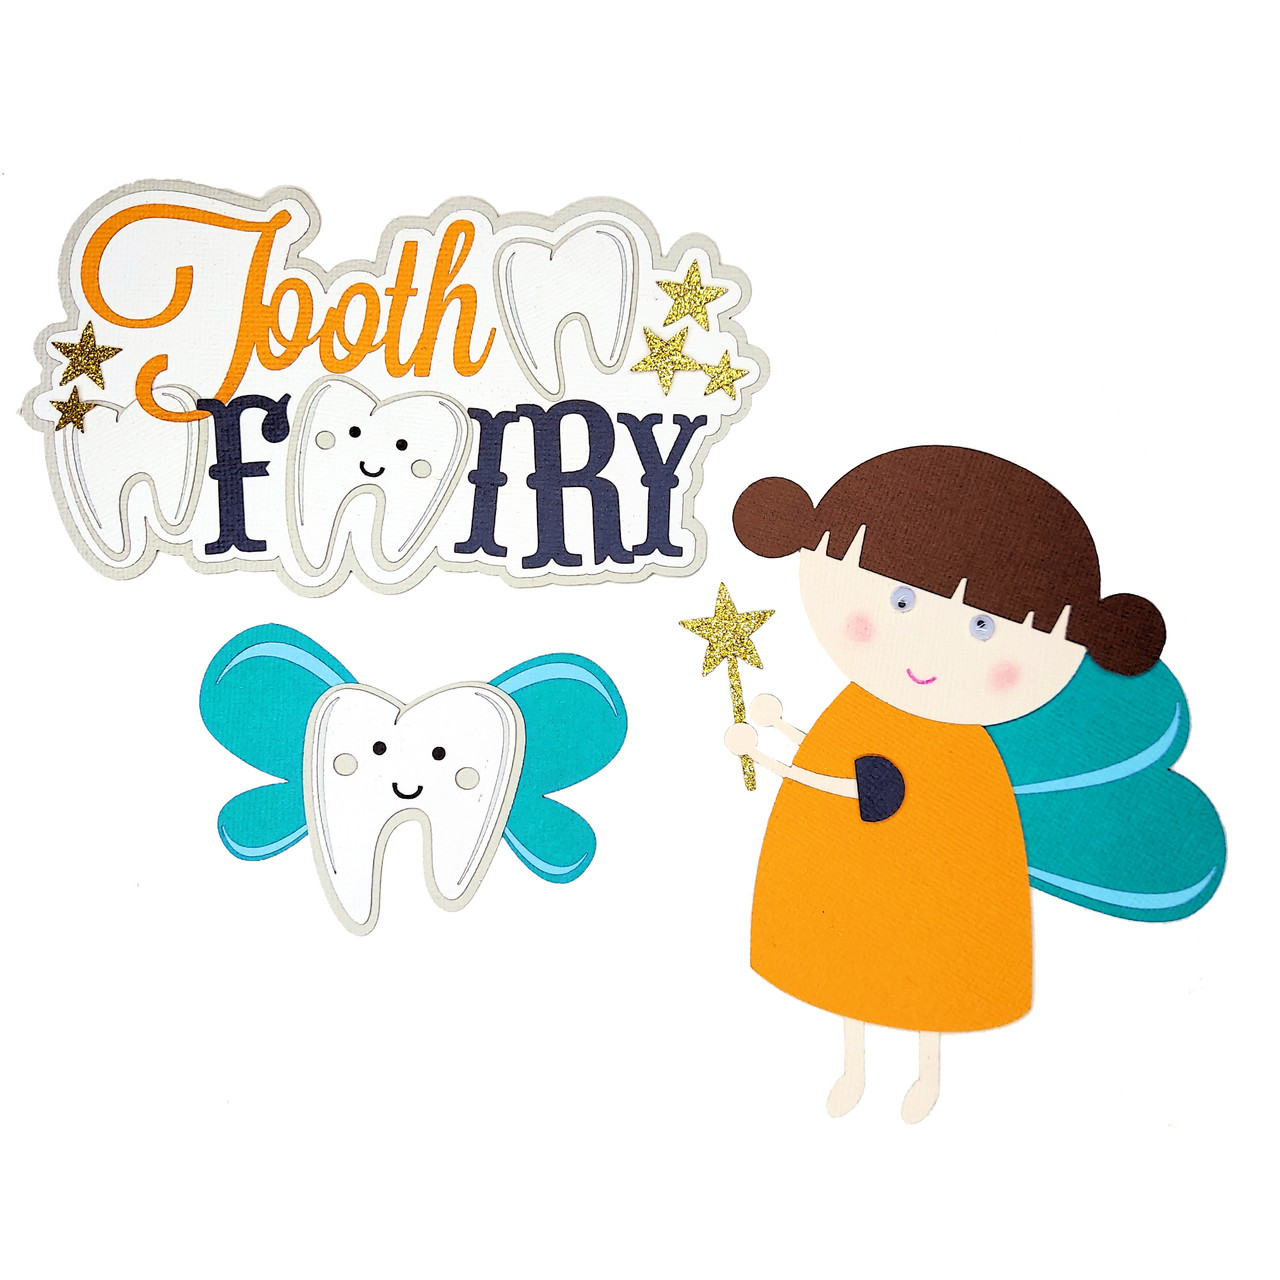 Tooth Fairy 6 x 6 Laser Die Cut Scrapbook Embellishment by SSC Designs (original design by Miss Kate Cuttables)